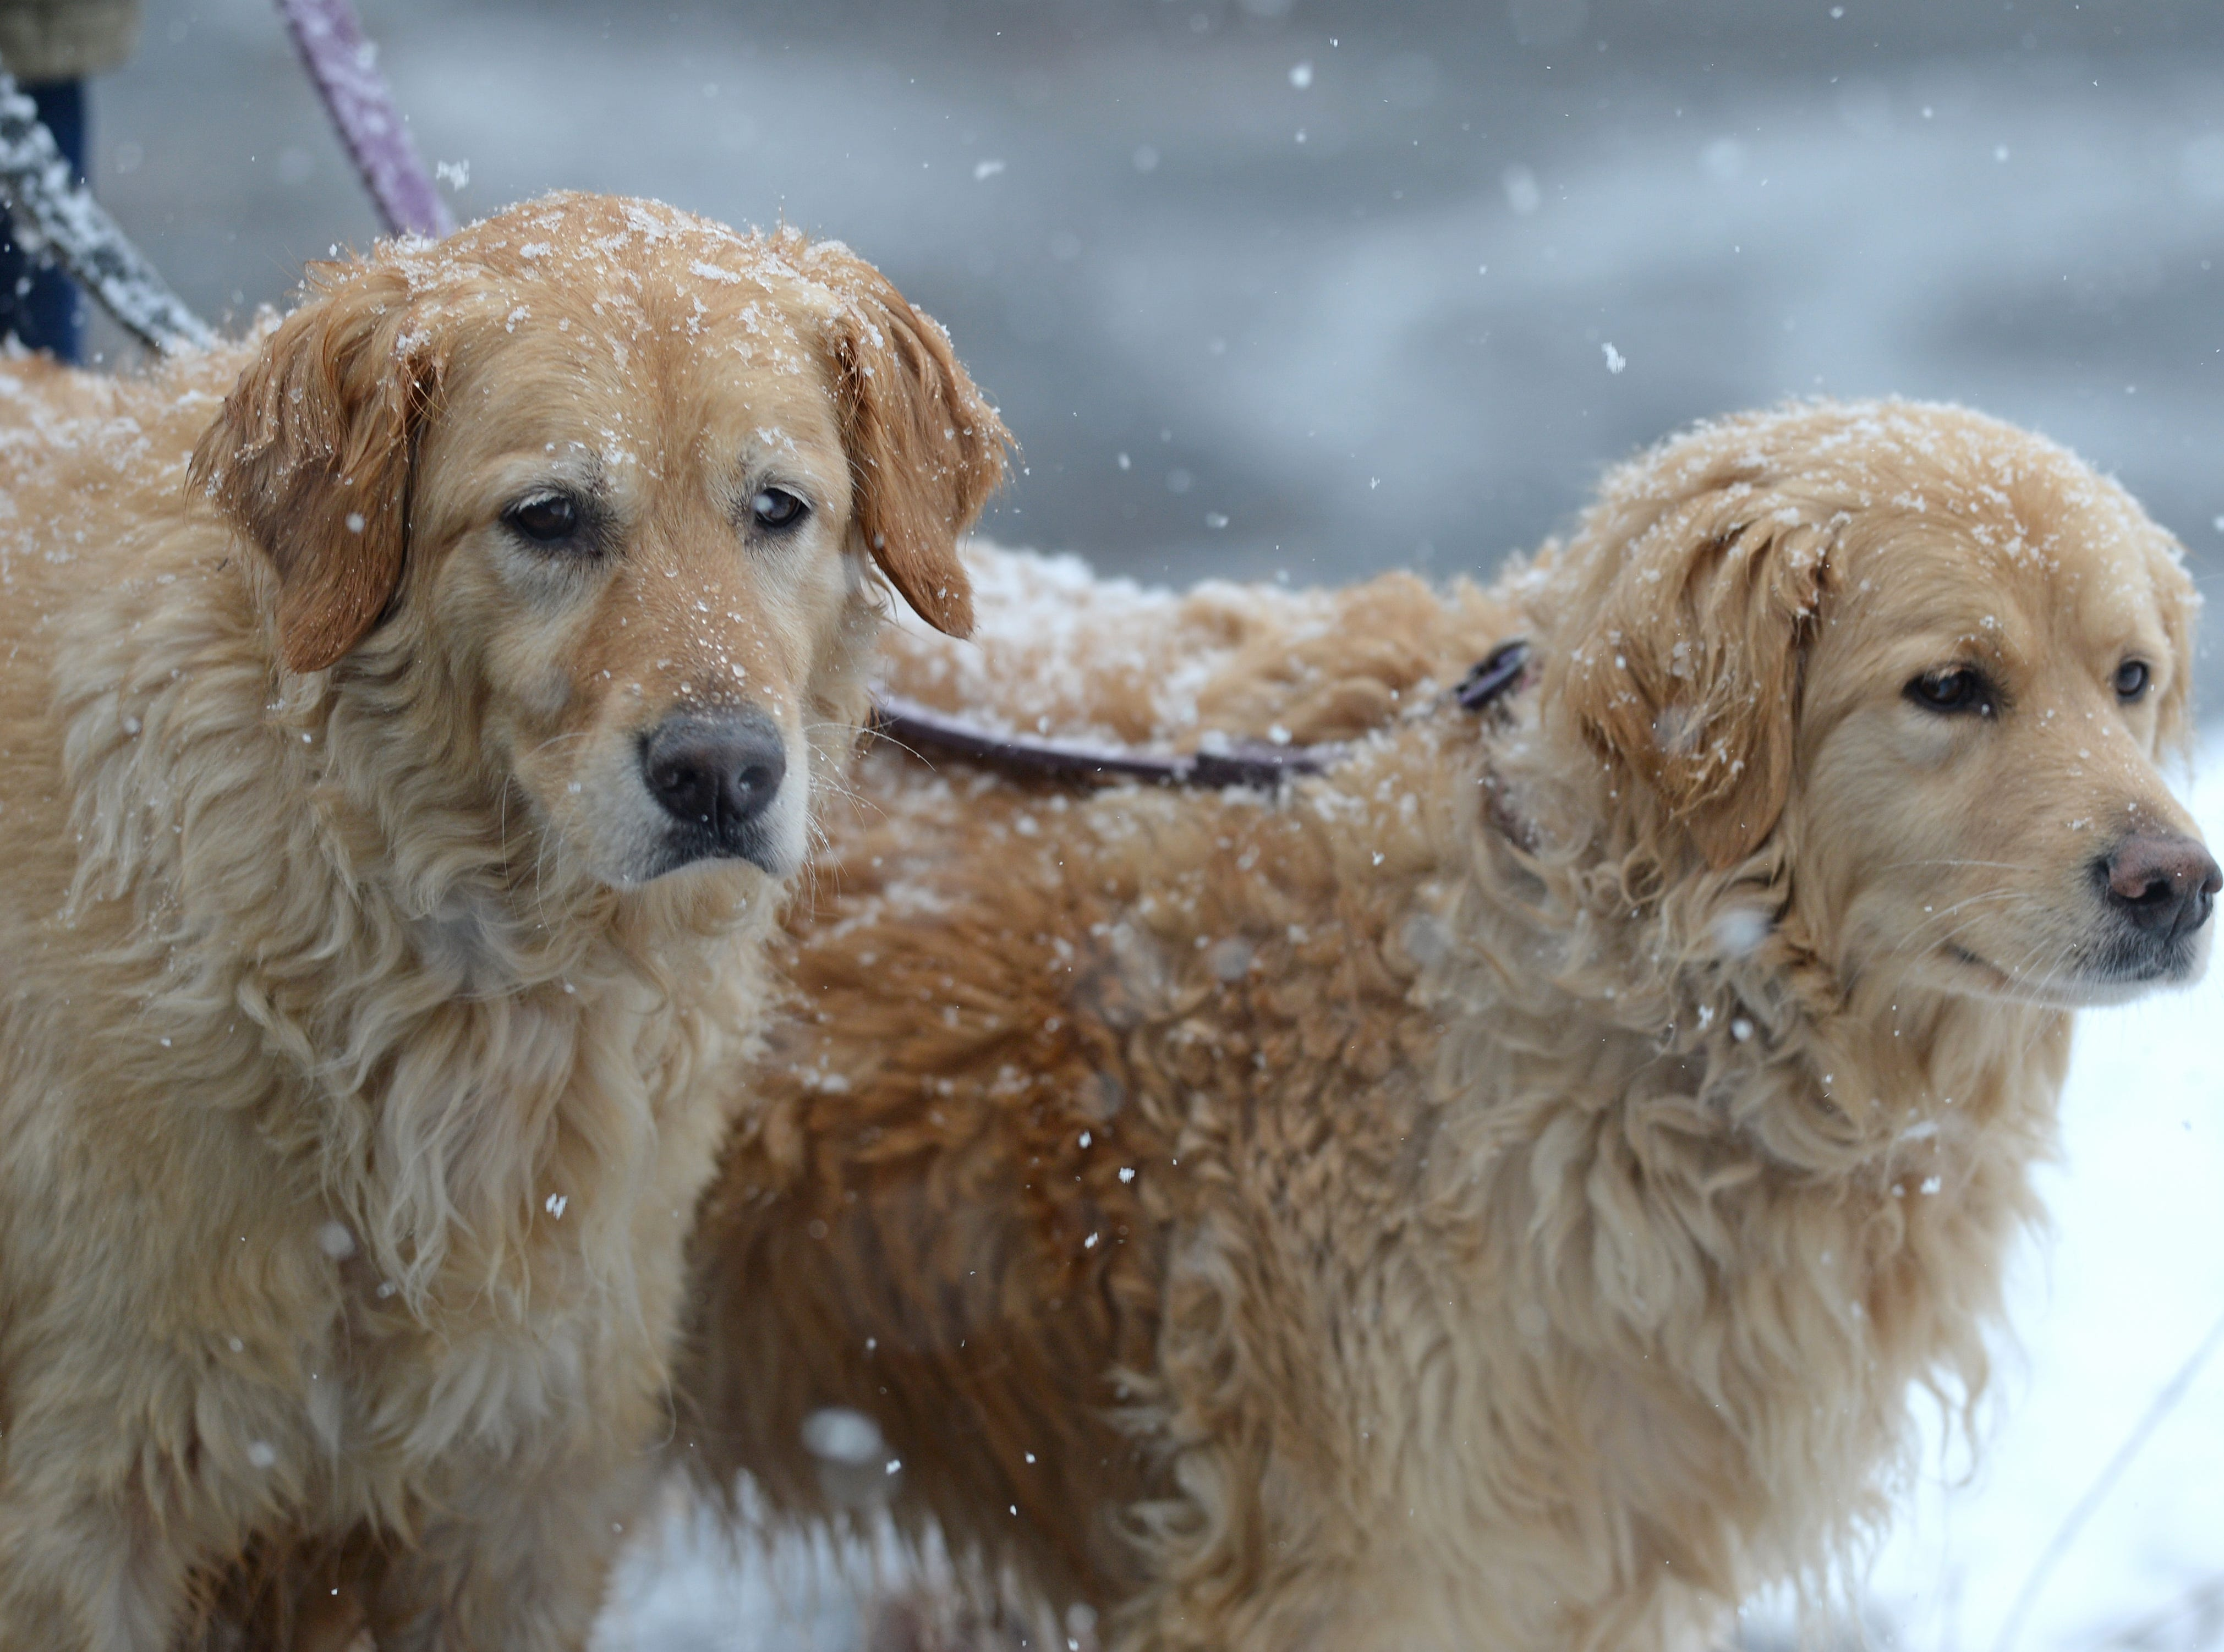 Jack Marshall walks his golden retrievers Hannah and Izzy during a morning snow fall in Belton Tuesday, February 11, 2014.